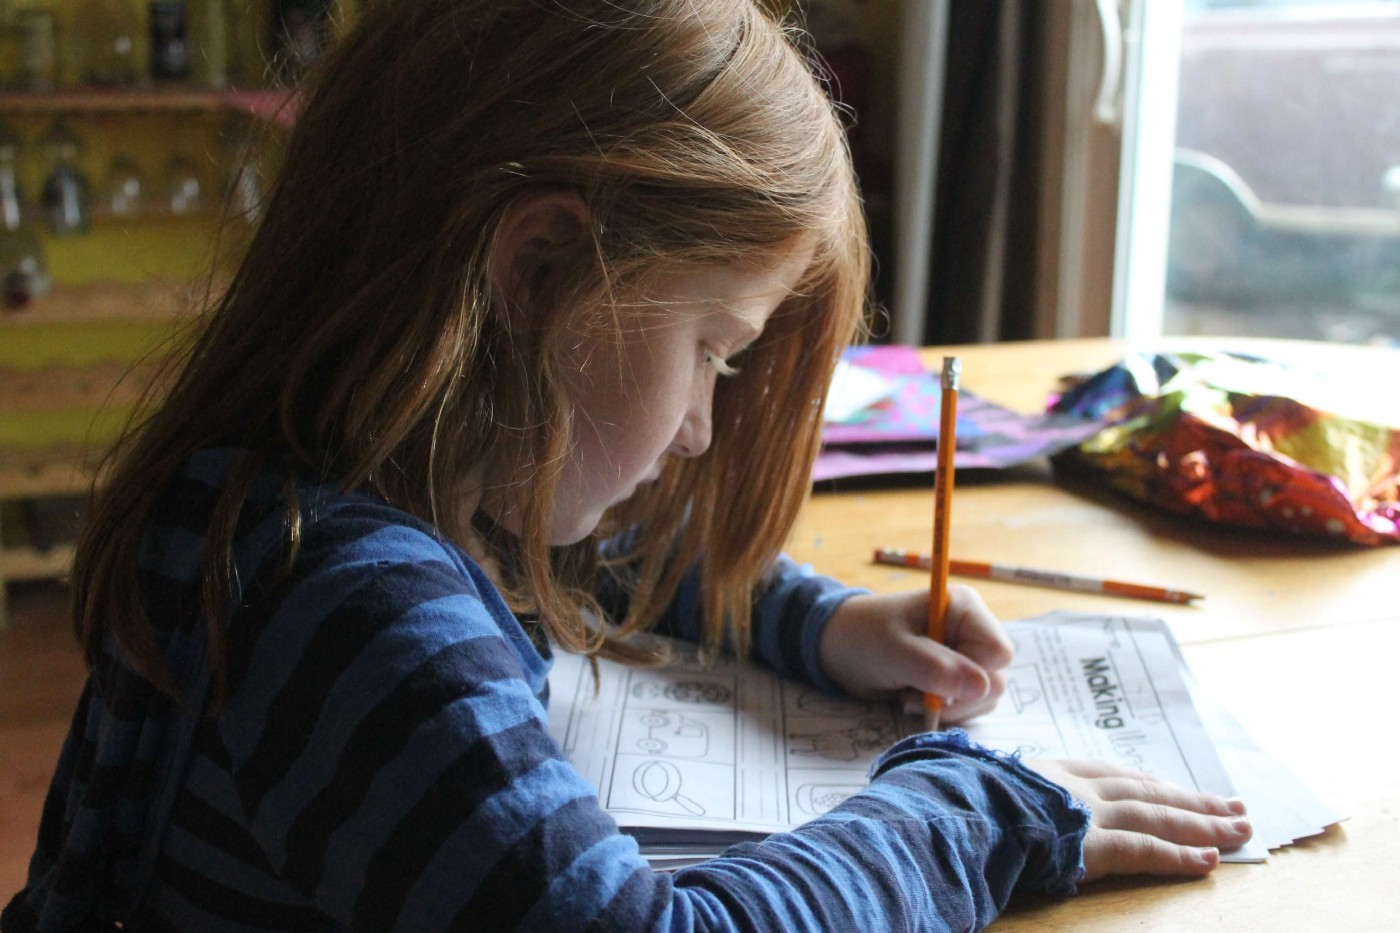 A young red-haired girl sits at a kitchen table completing a worksheet with a pencil.